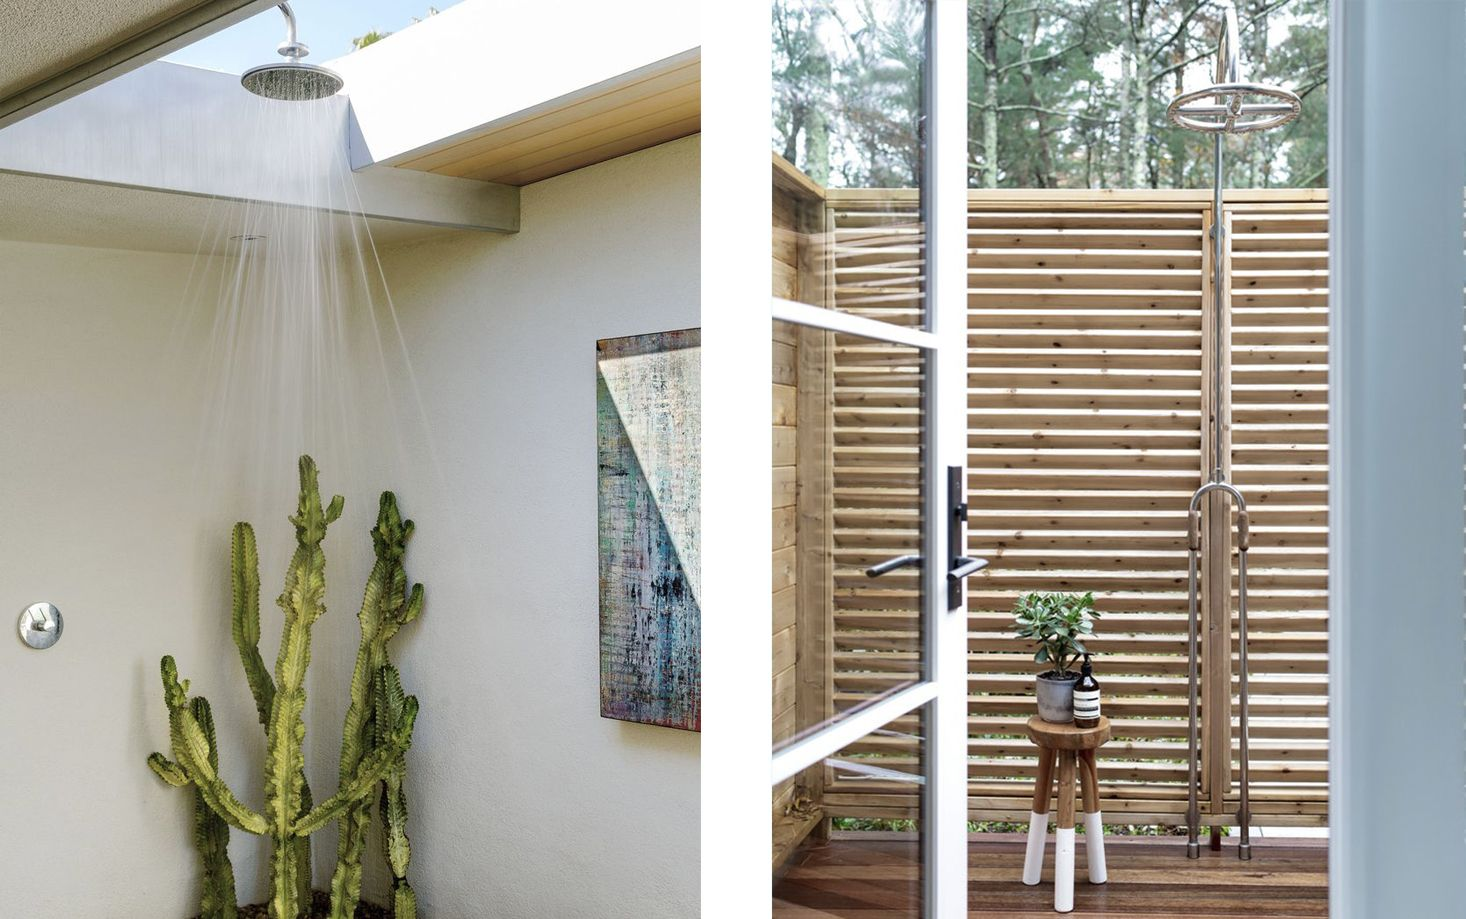 17 Luxurious Outdoor Showers to Wash Away All Your Stress